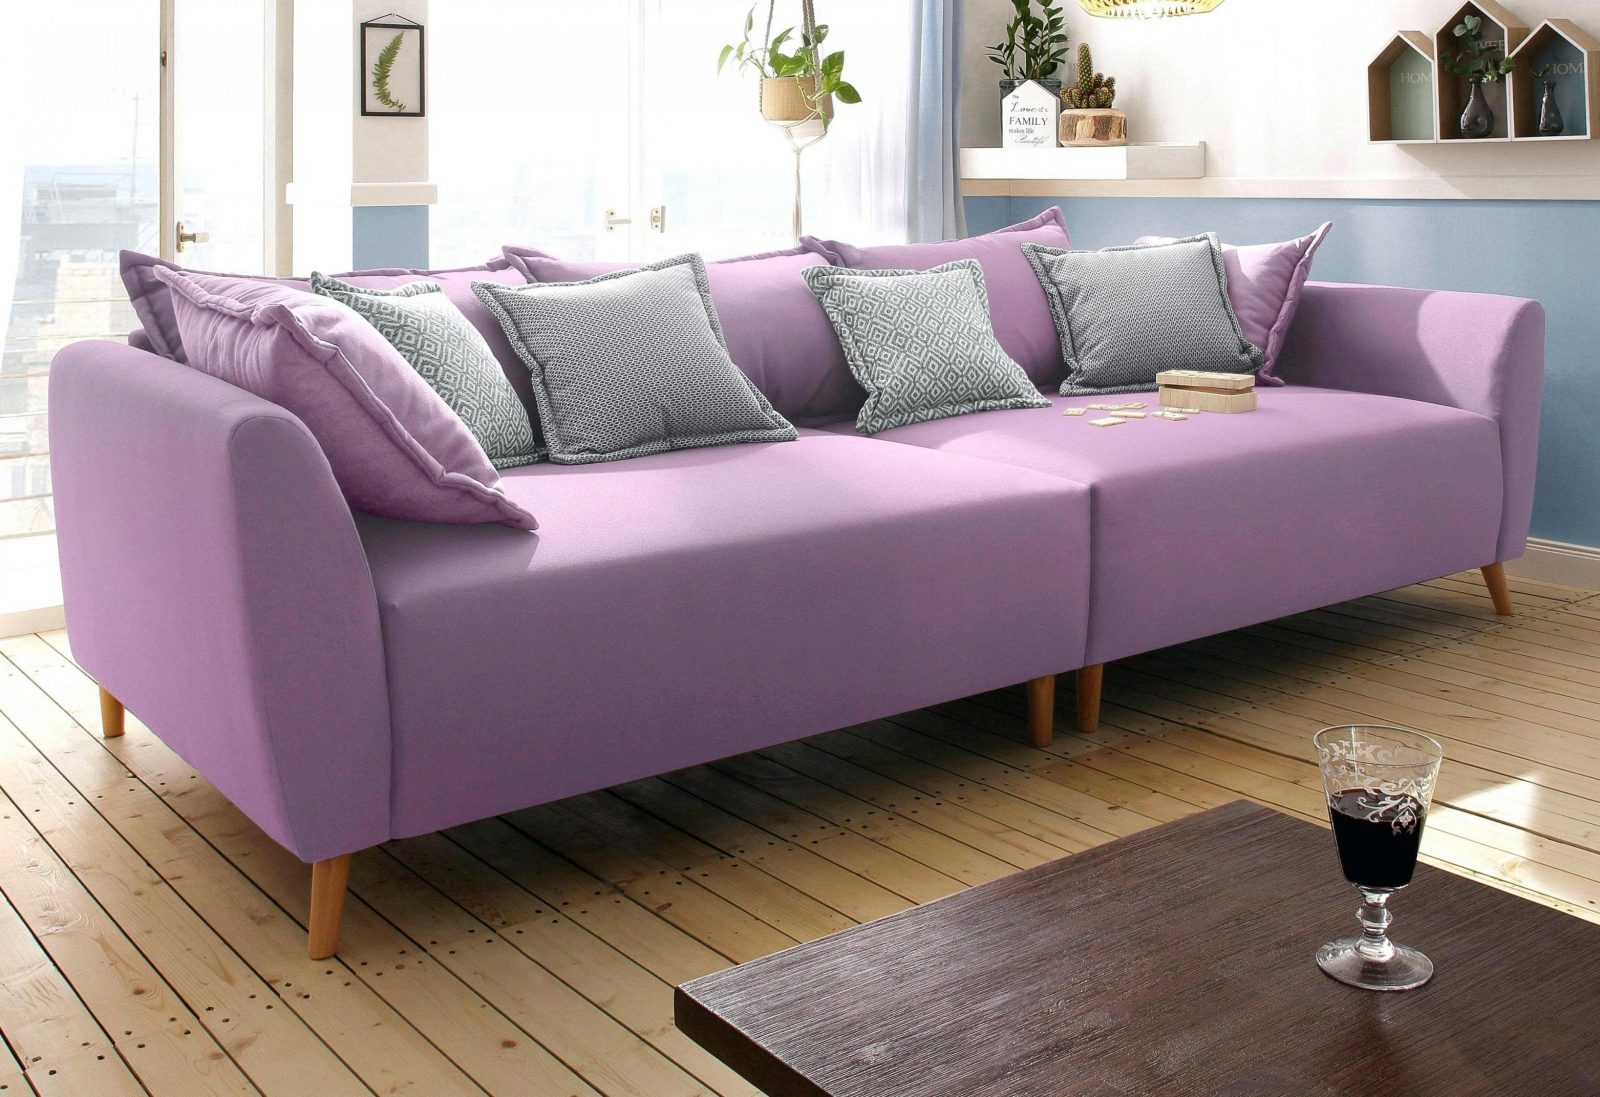 big sofa otto xxl big sofa ledersofa xxl big sofa vintage m leder von otto big sofa xxl photo. Black Bedroom Furniture Sets. Home Design Ideas